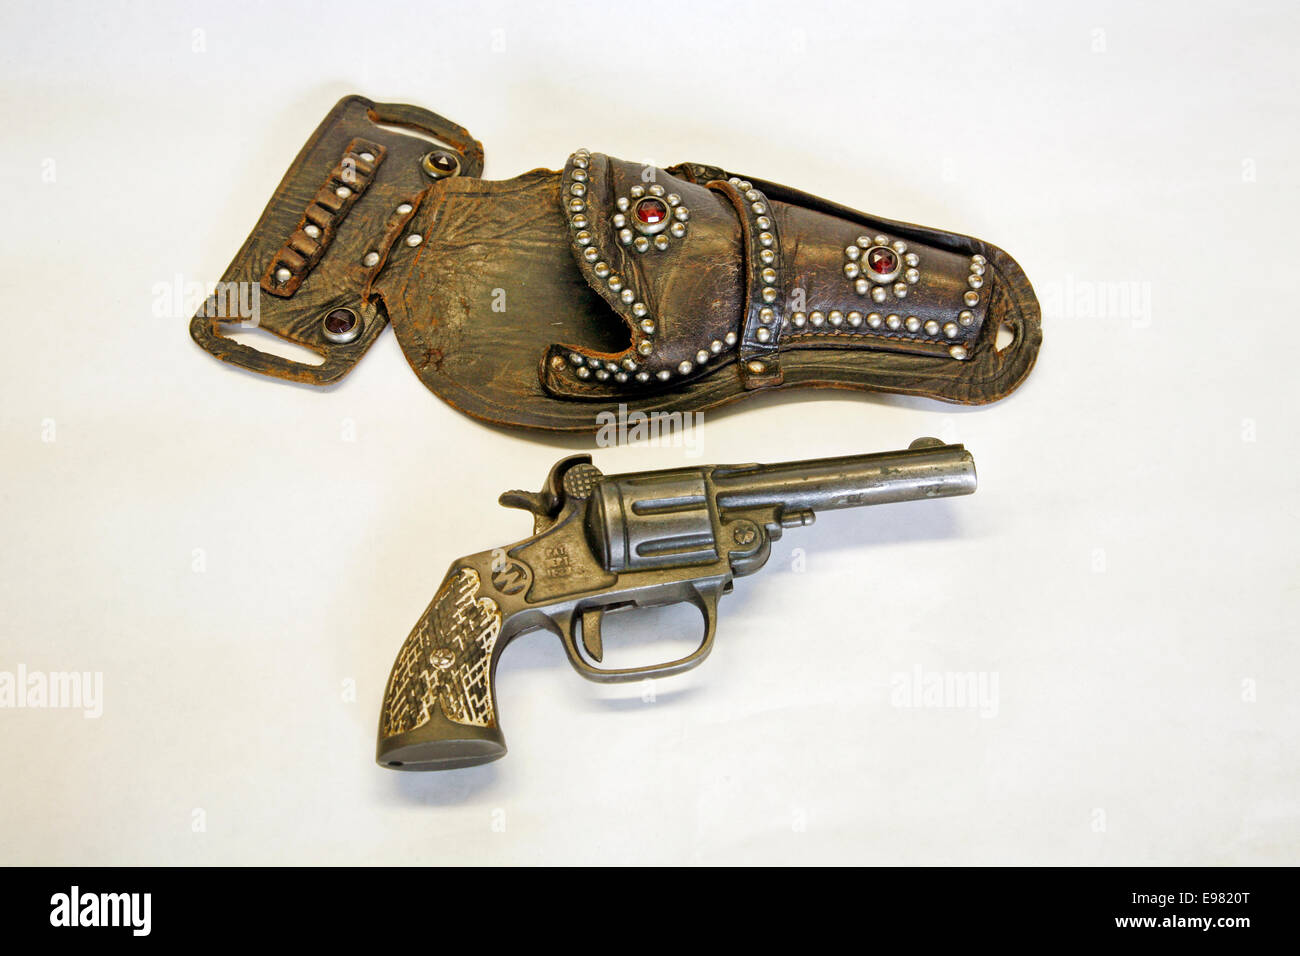 An antique cap pistol and leather holster circa 1900 - Stock Image